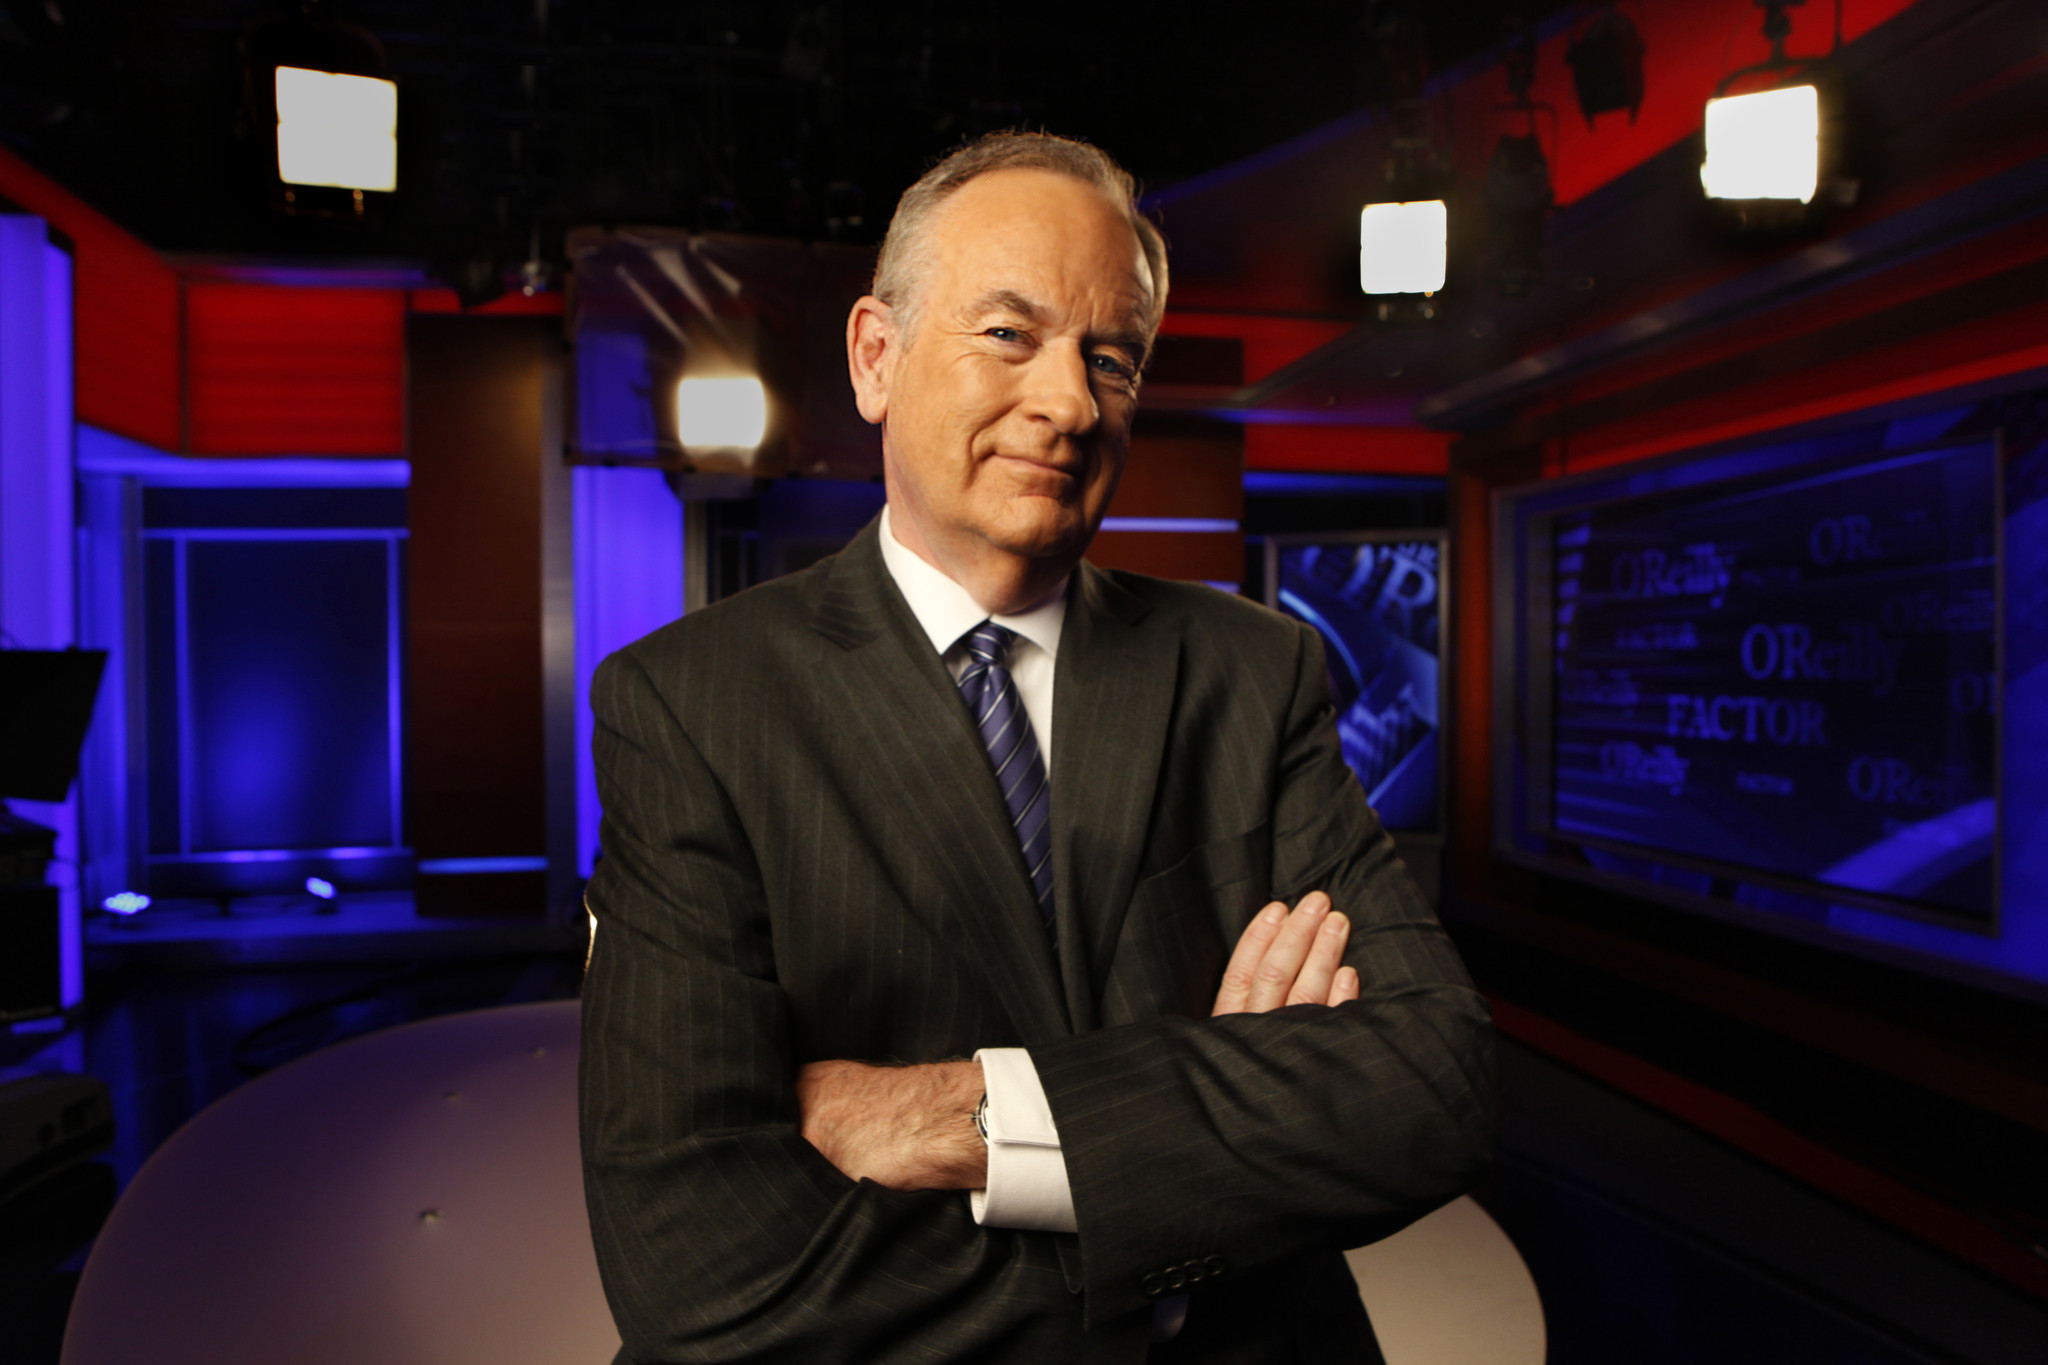 Bill O'Reilly Returns To Fox News To Taunt Rachel Maddow